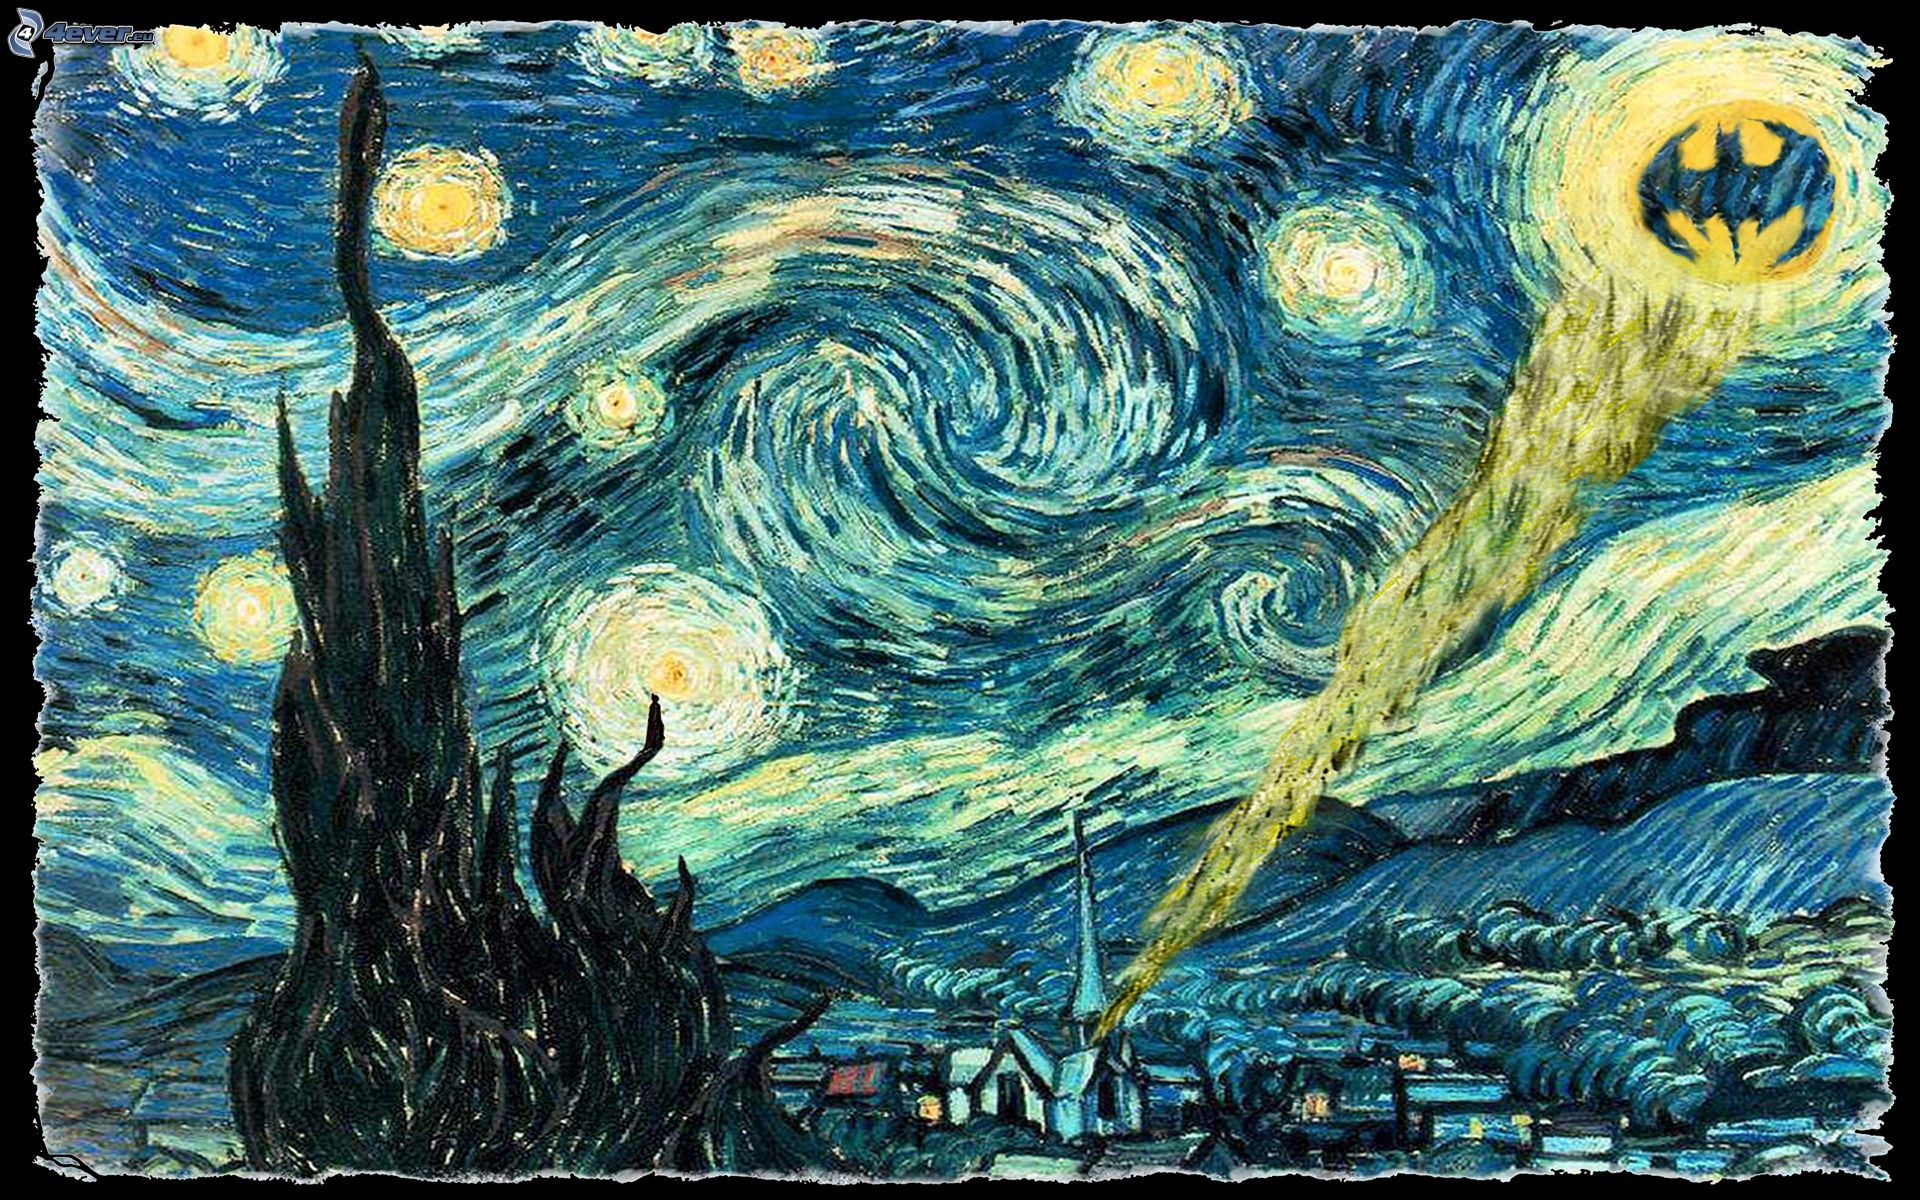 starry night by vincent van gogh Vincent van gogh (30 march 1853 – 29 july 1890) painted starry night in 1889,  one year before his death the painting depicts a phase of his.